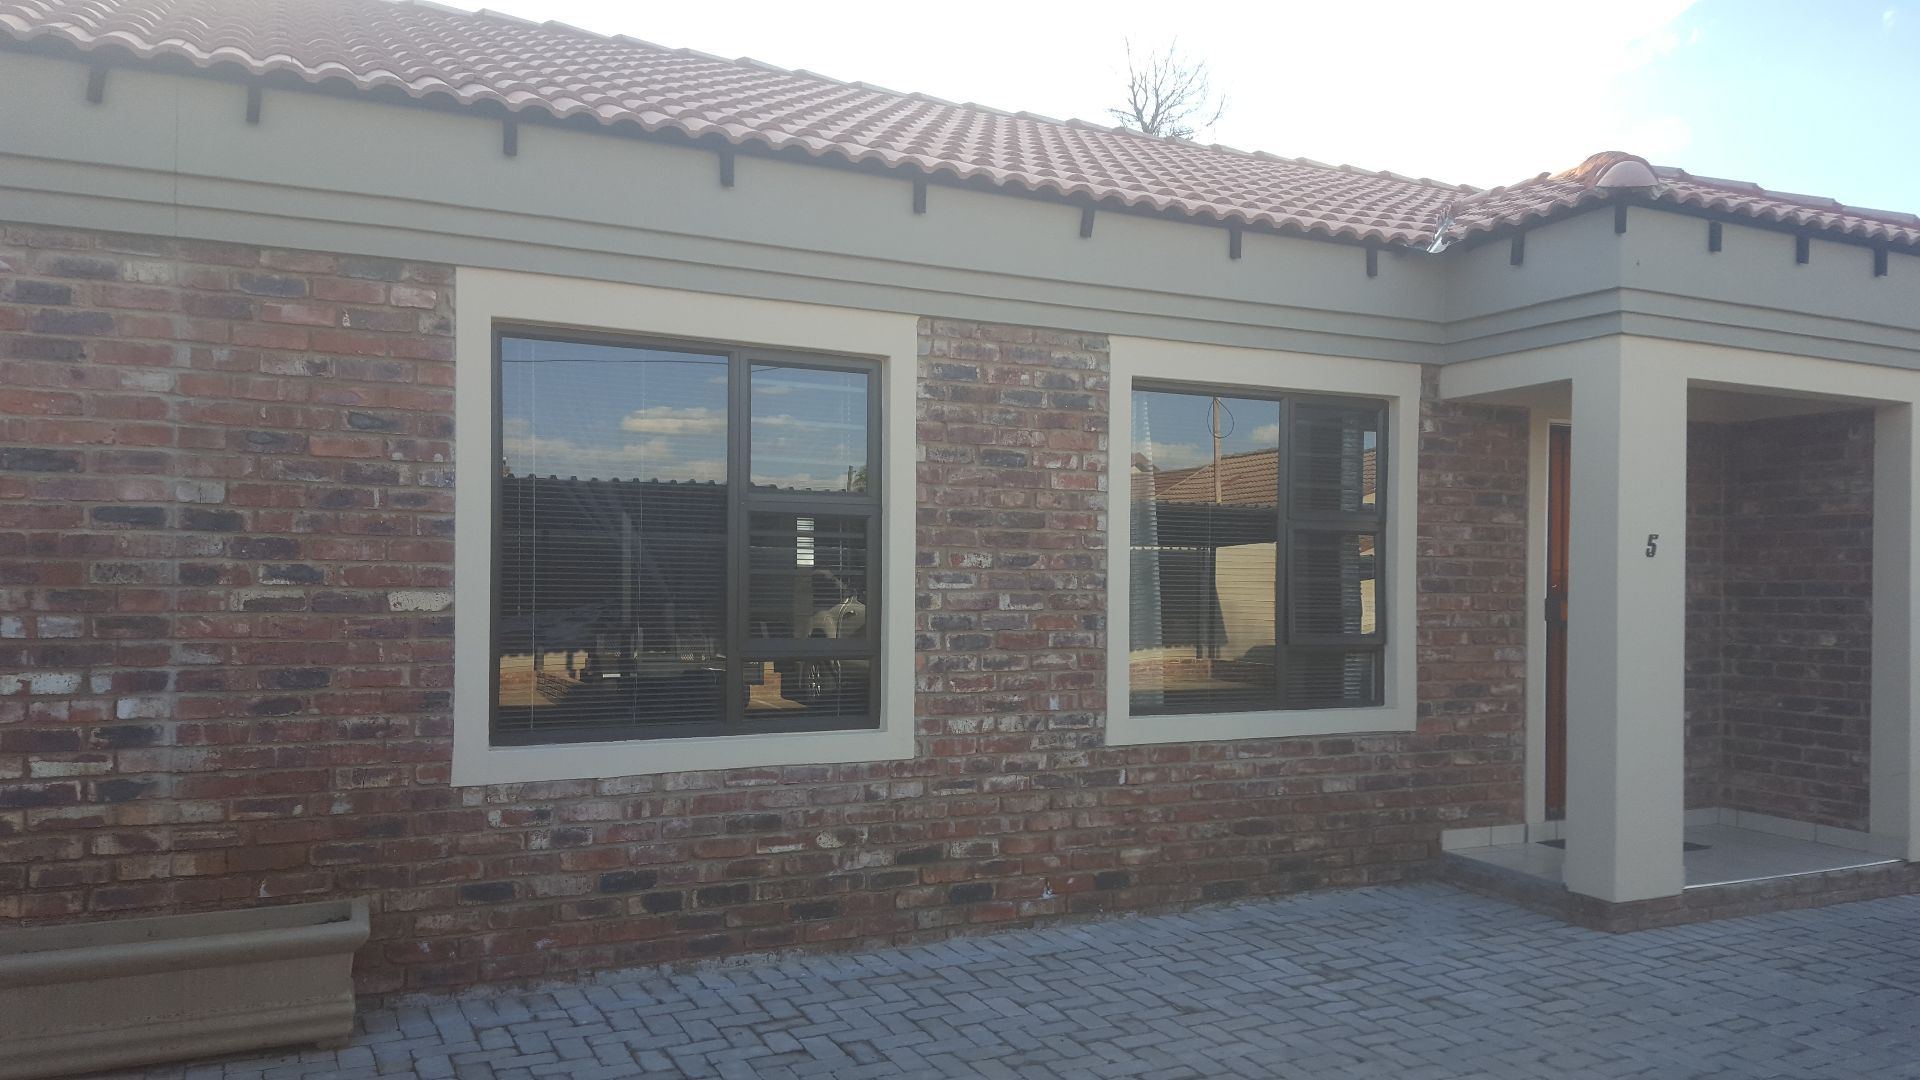 Potchefstroom Central property for sale. Ref No: 13543485. Picture no 2